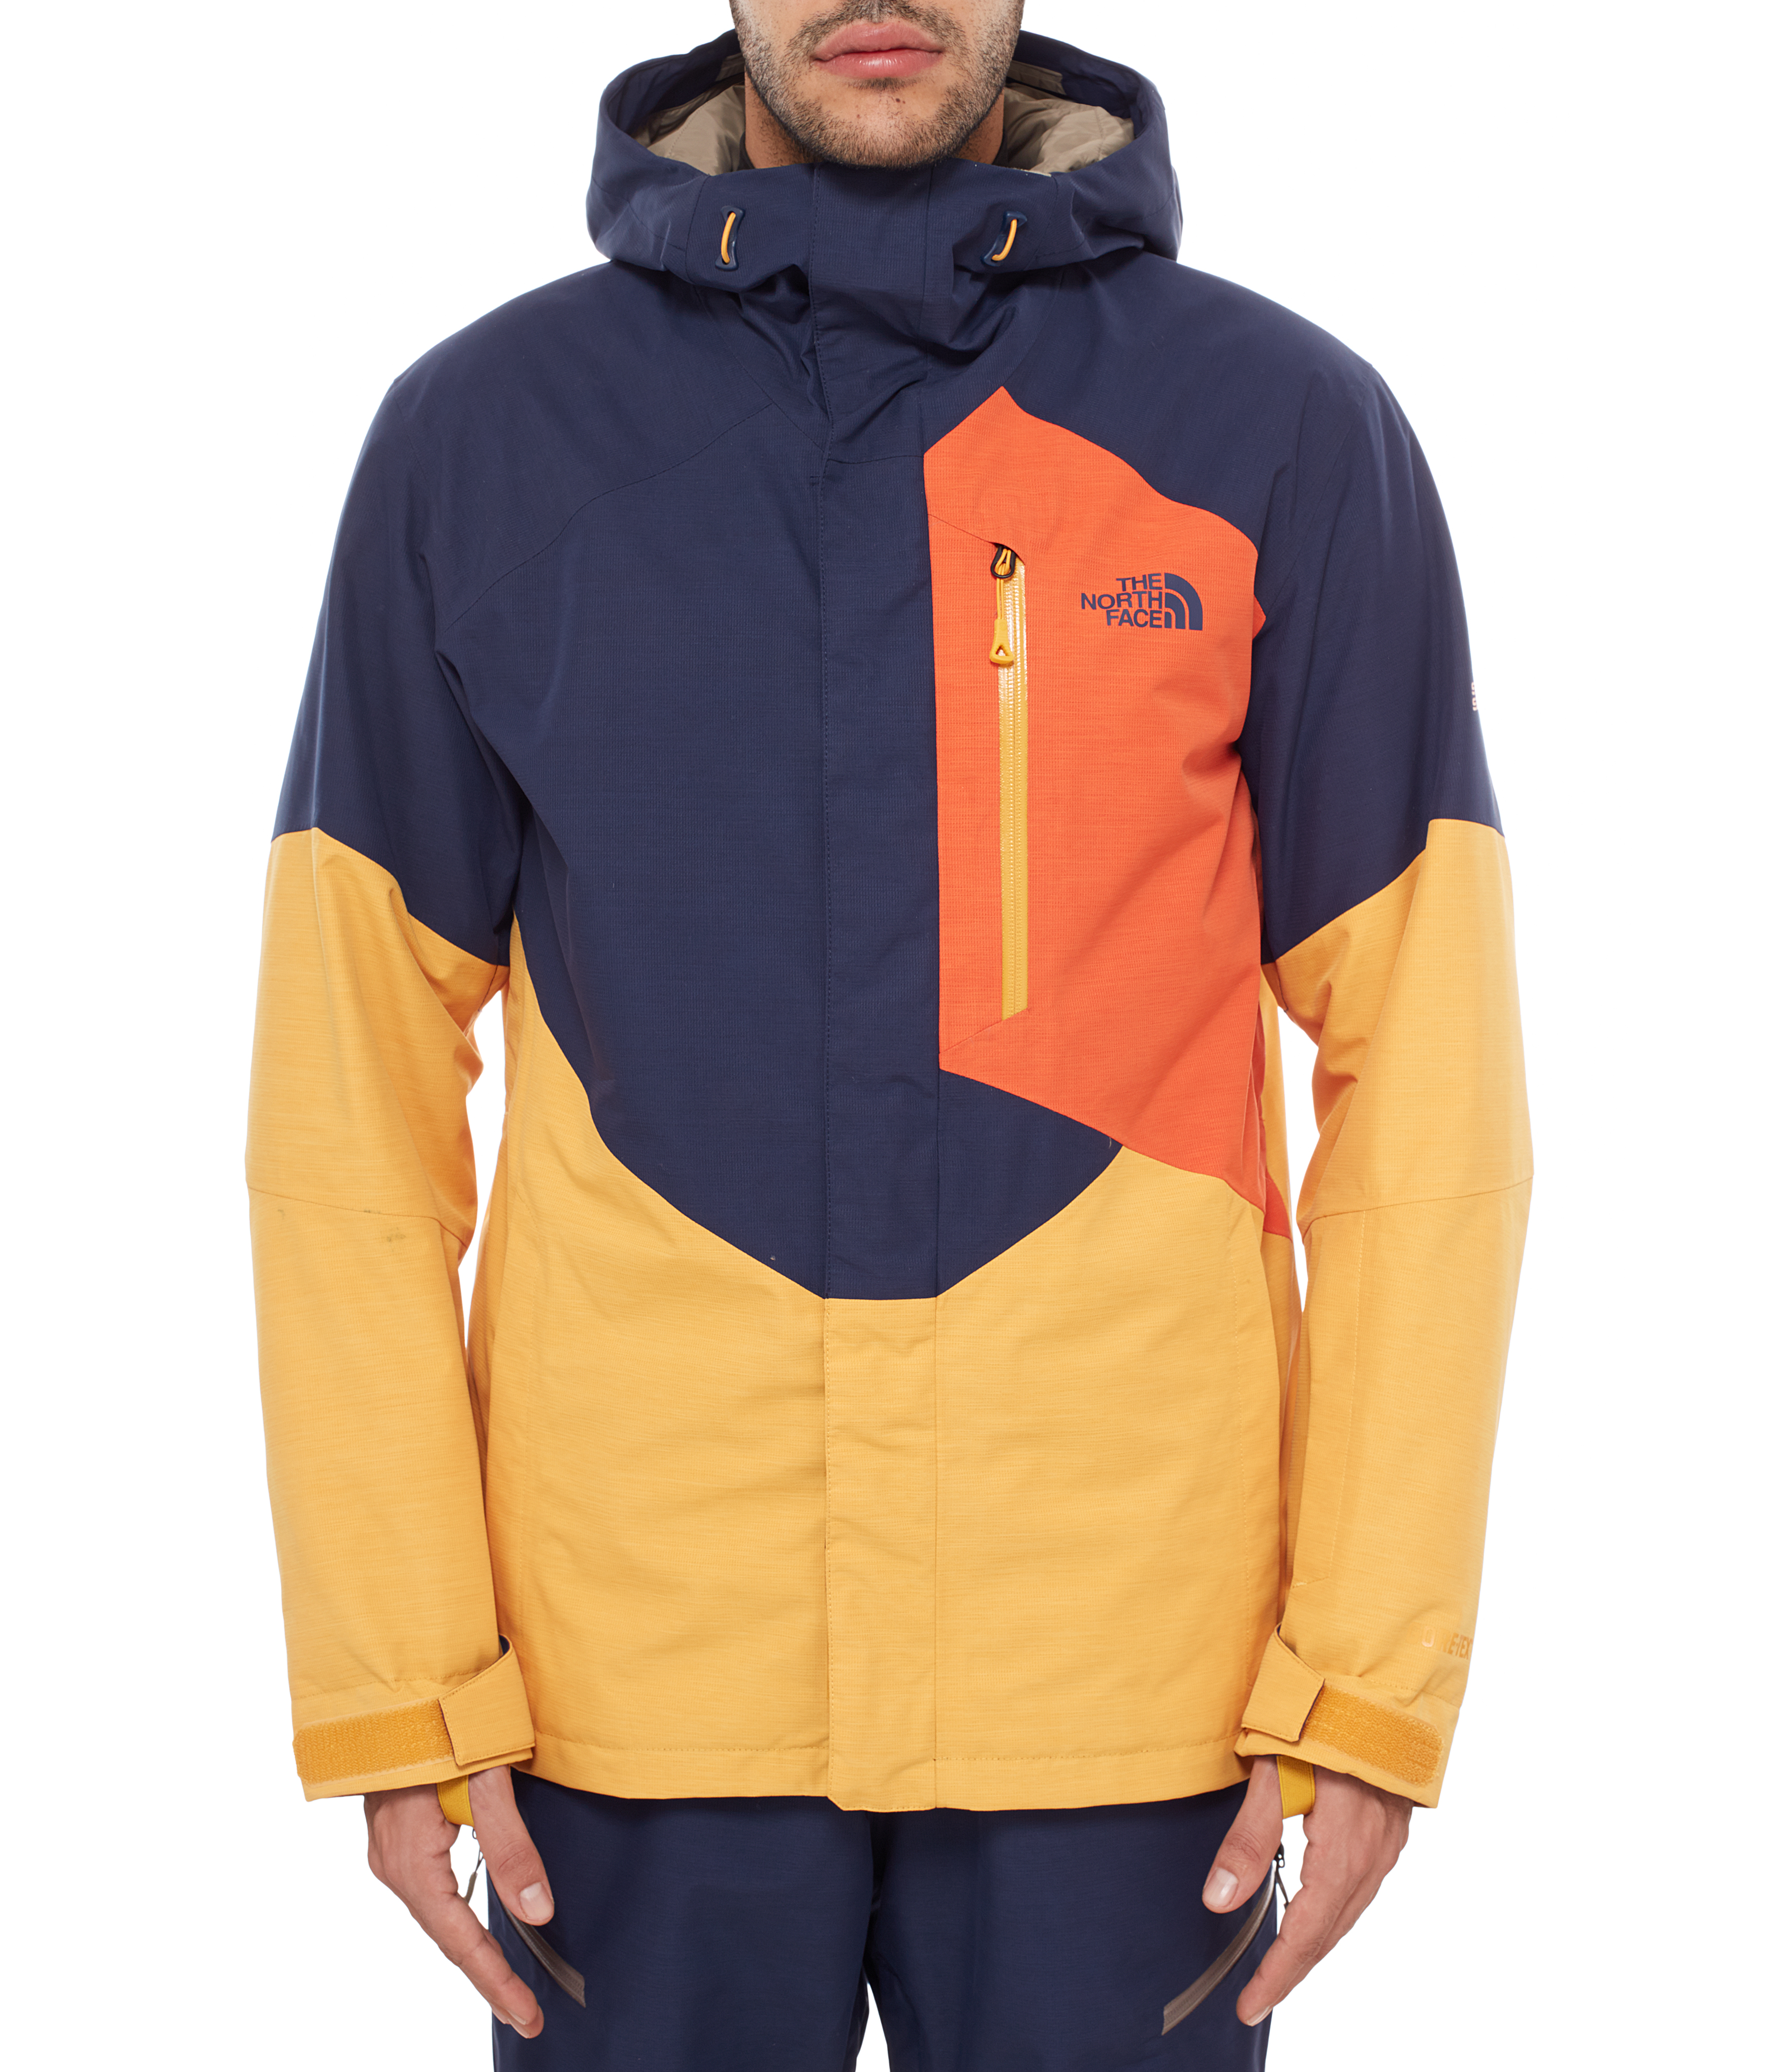 ... 2016 The North Face, NFZ Insulated Jacket, ...